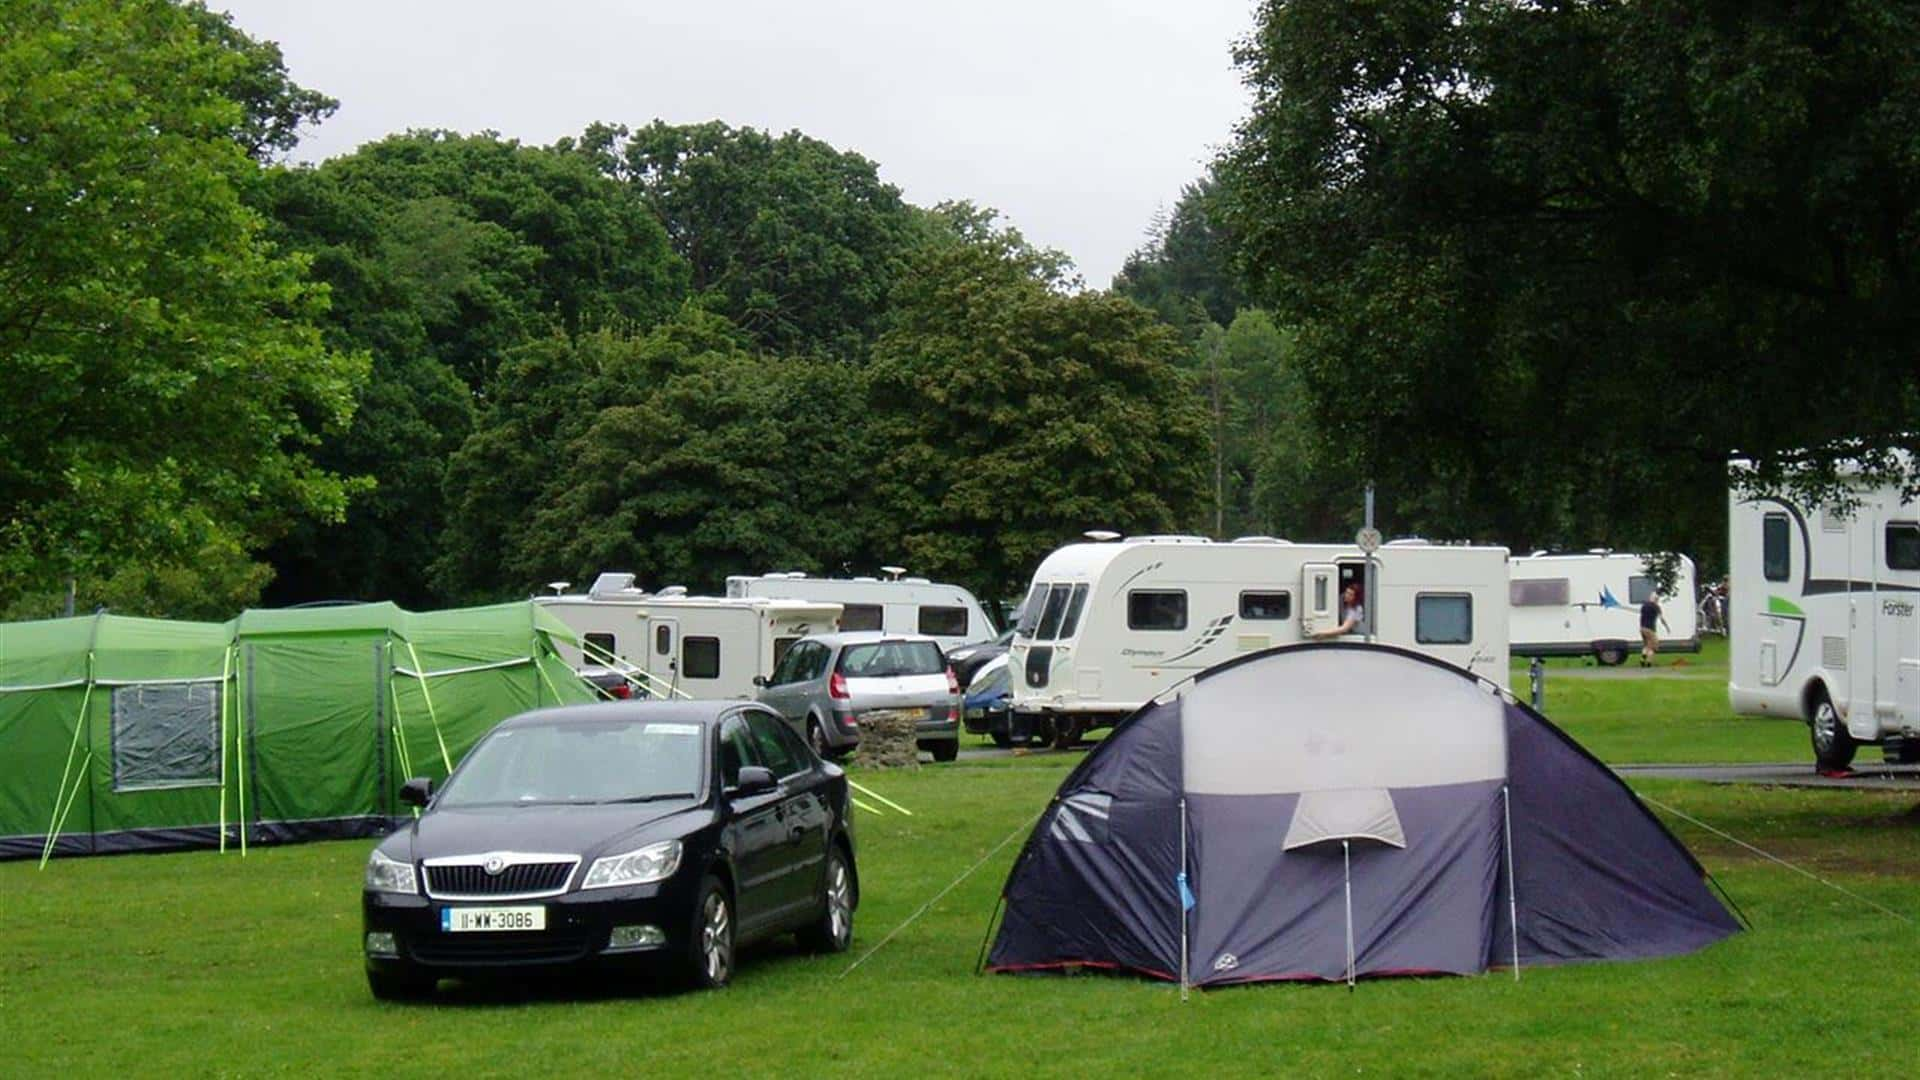 CAMPING AND PARKING OF CARAVANS